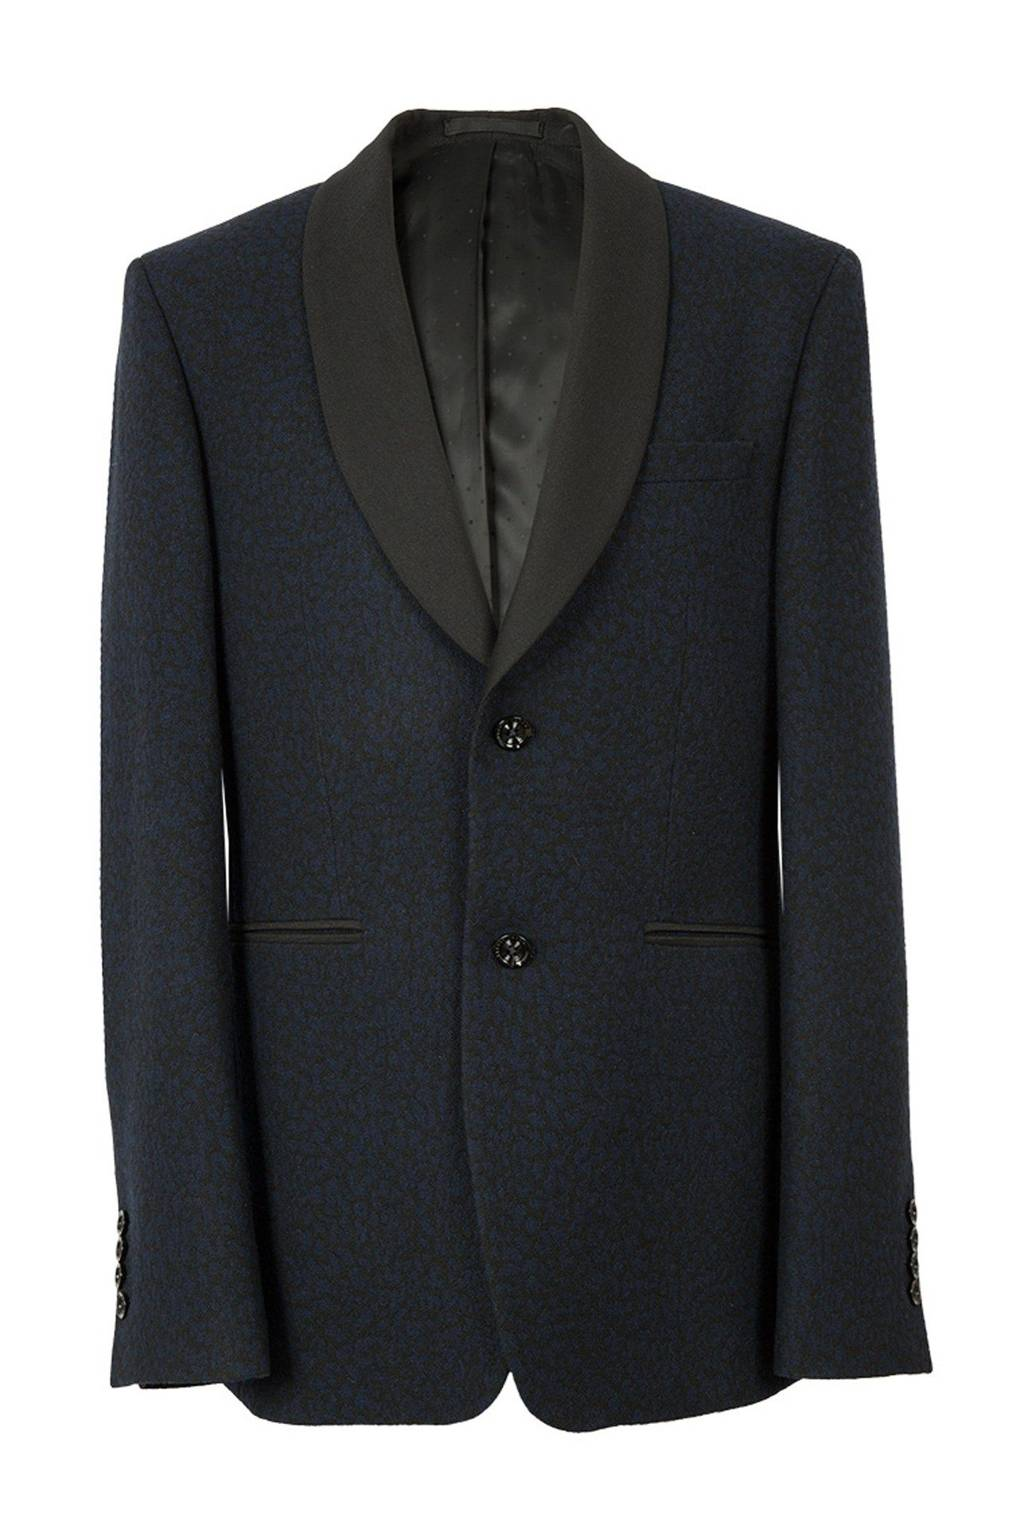 9dfc7baf636 The best dinner suits for every budget